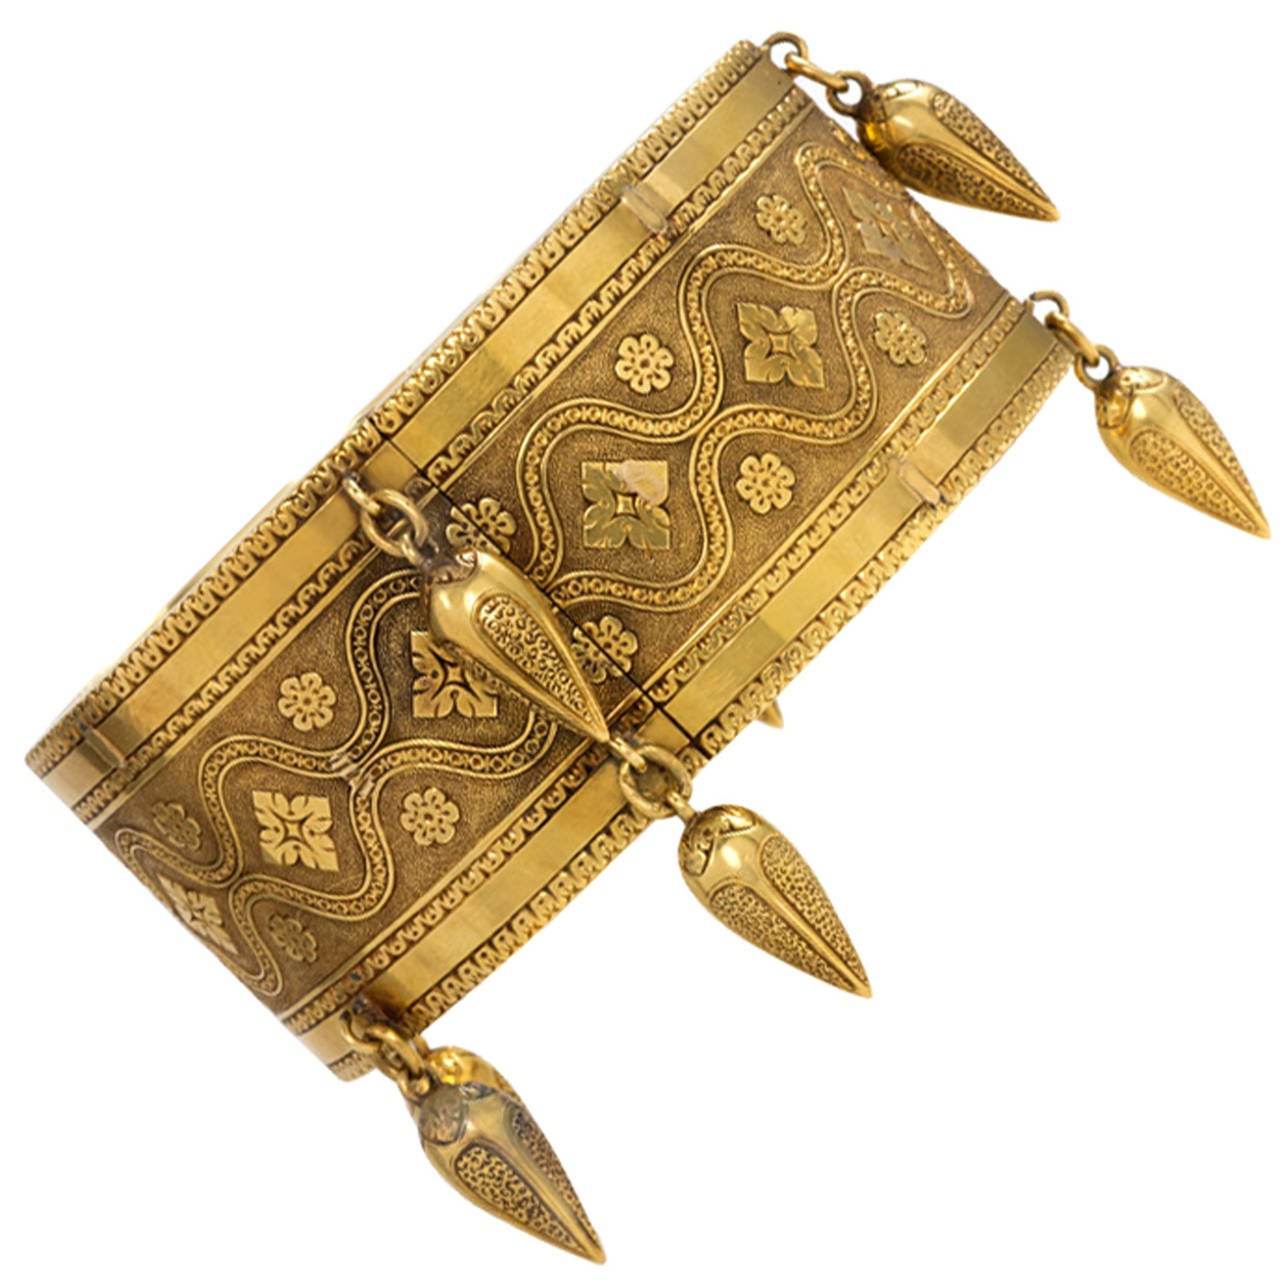 Antique Gold Moorish Motif Cuff Bracelet At 1stdibs